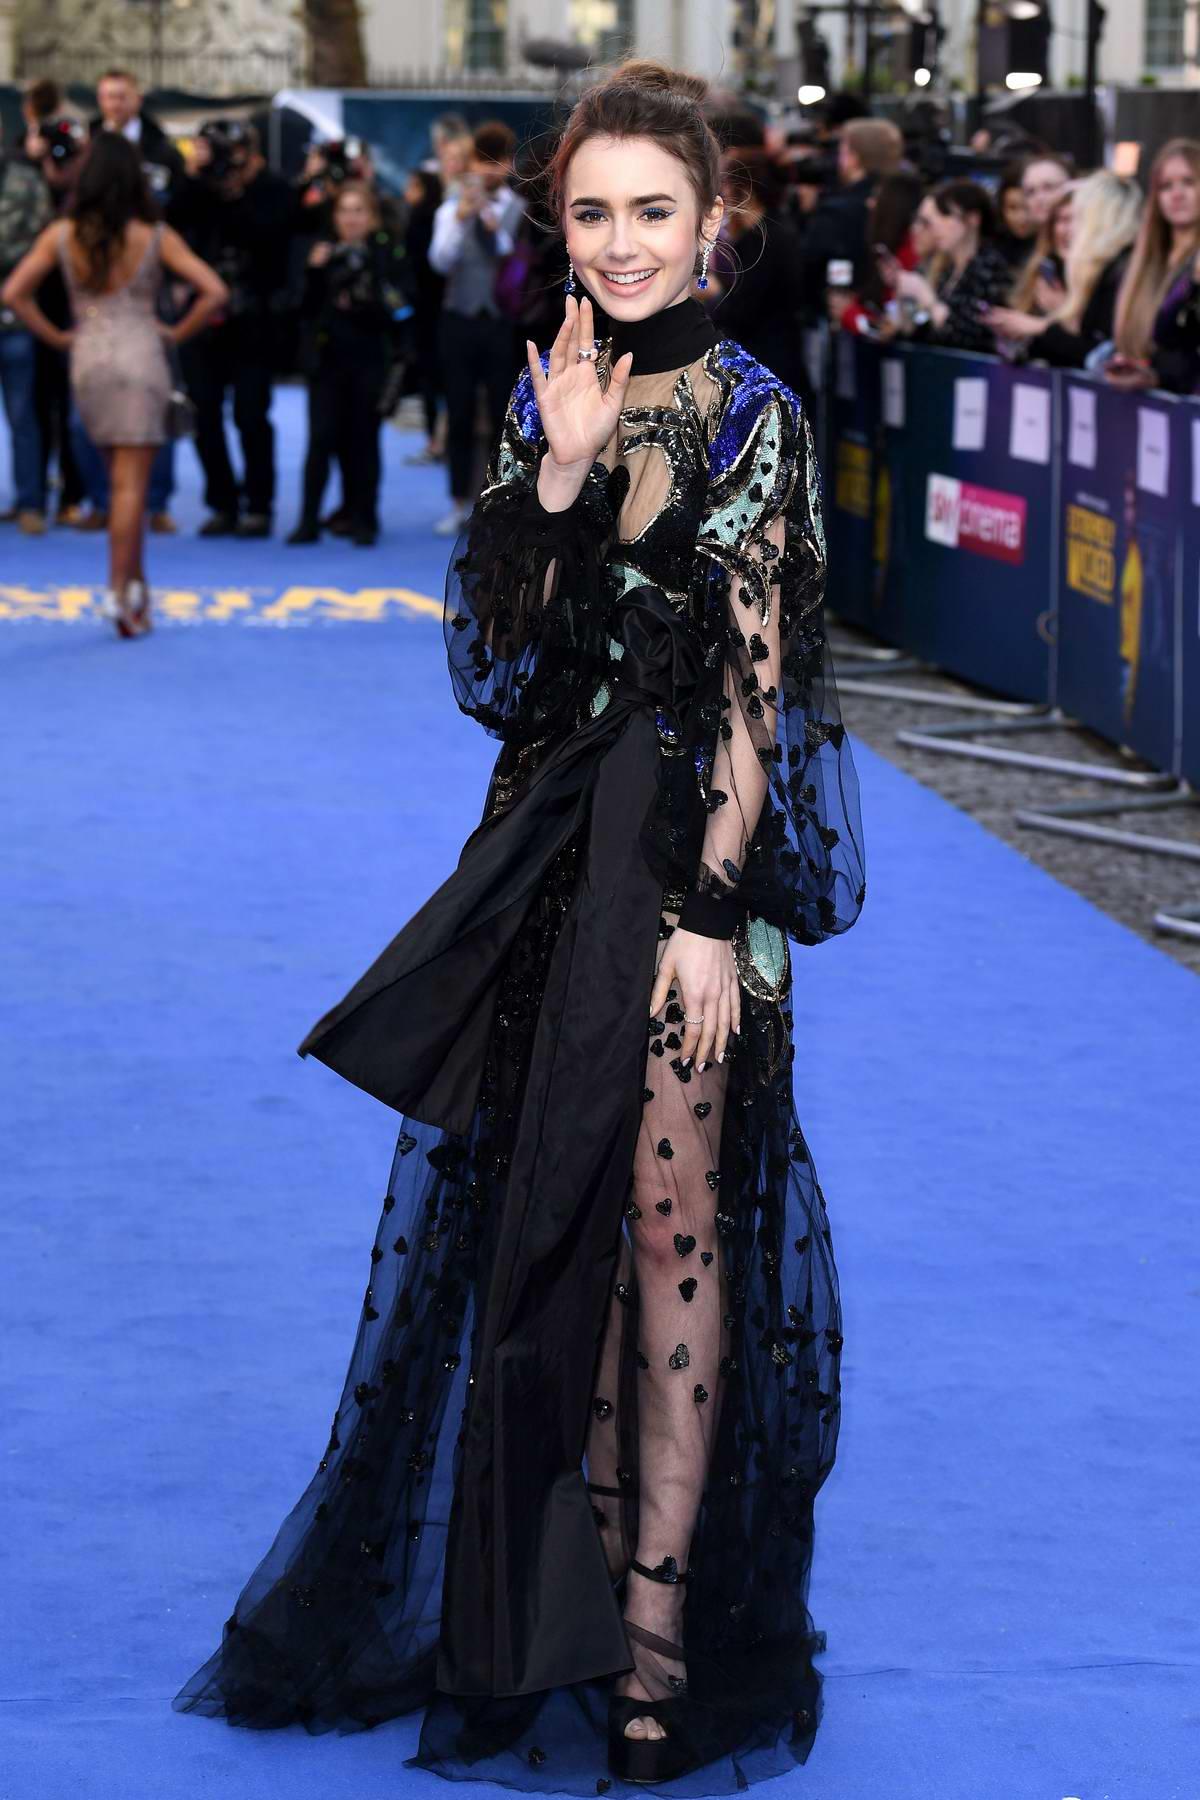 Lily Collins attends the European Premiere of 'Extremely Wicked, Shockingly Evil and Vile' at Curzon Mayfair in London, UK